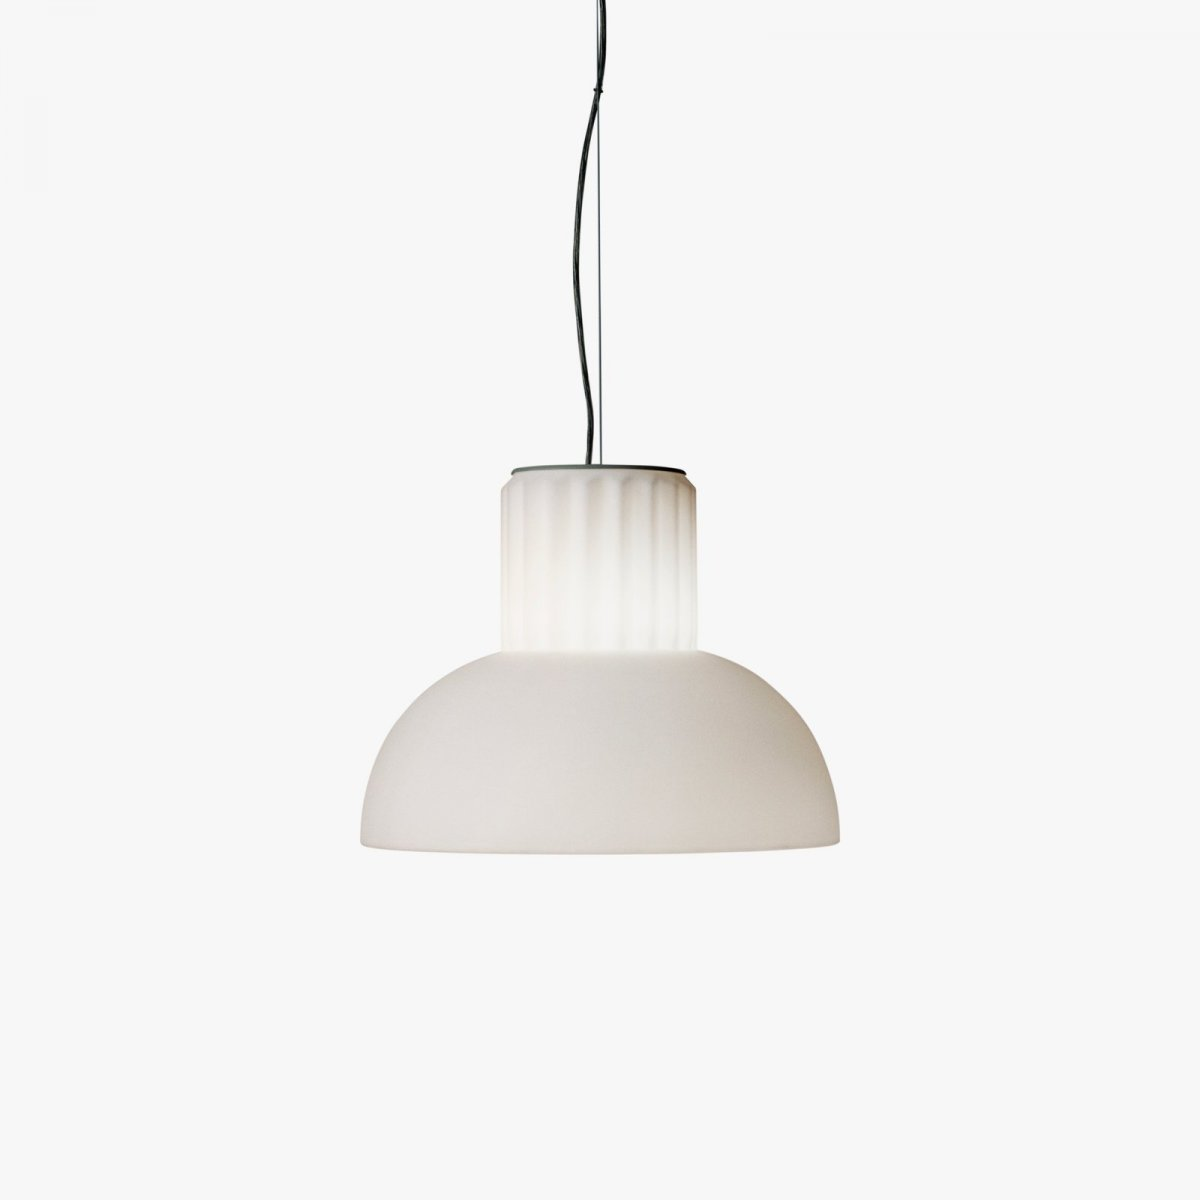 The Standard Pendant lamp, lit.